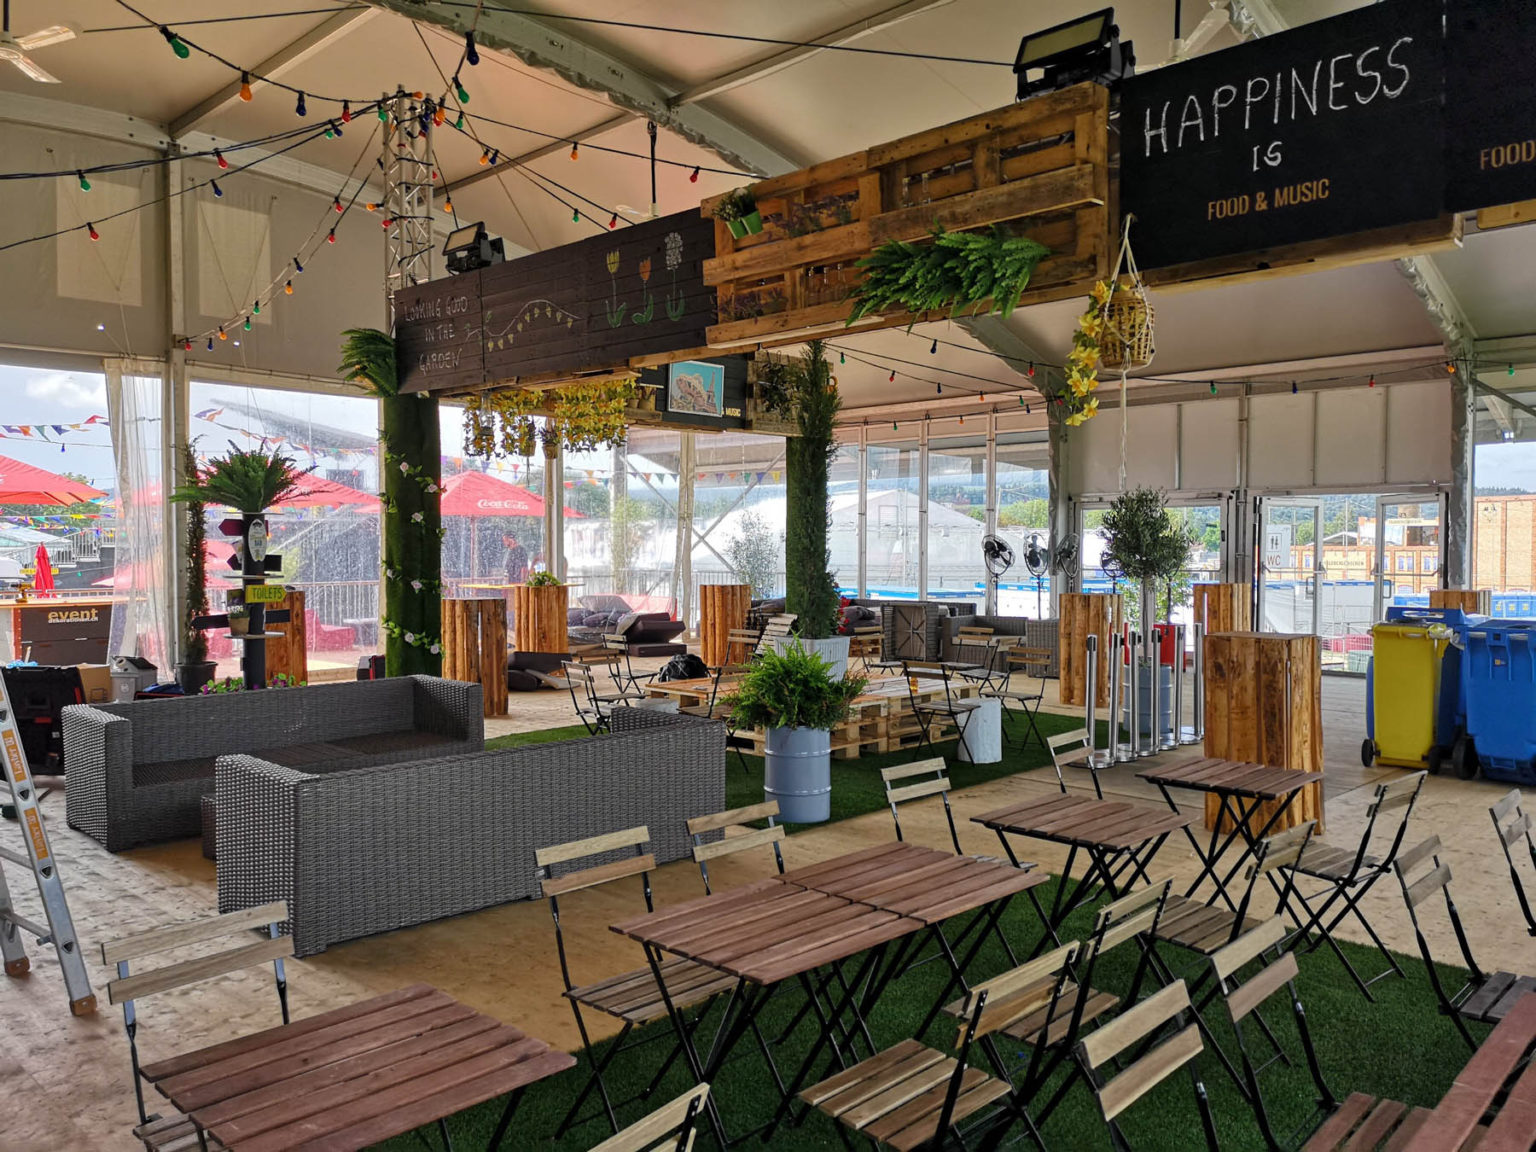 Streetfood mieten rent-a-lounge 19